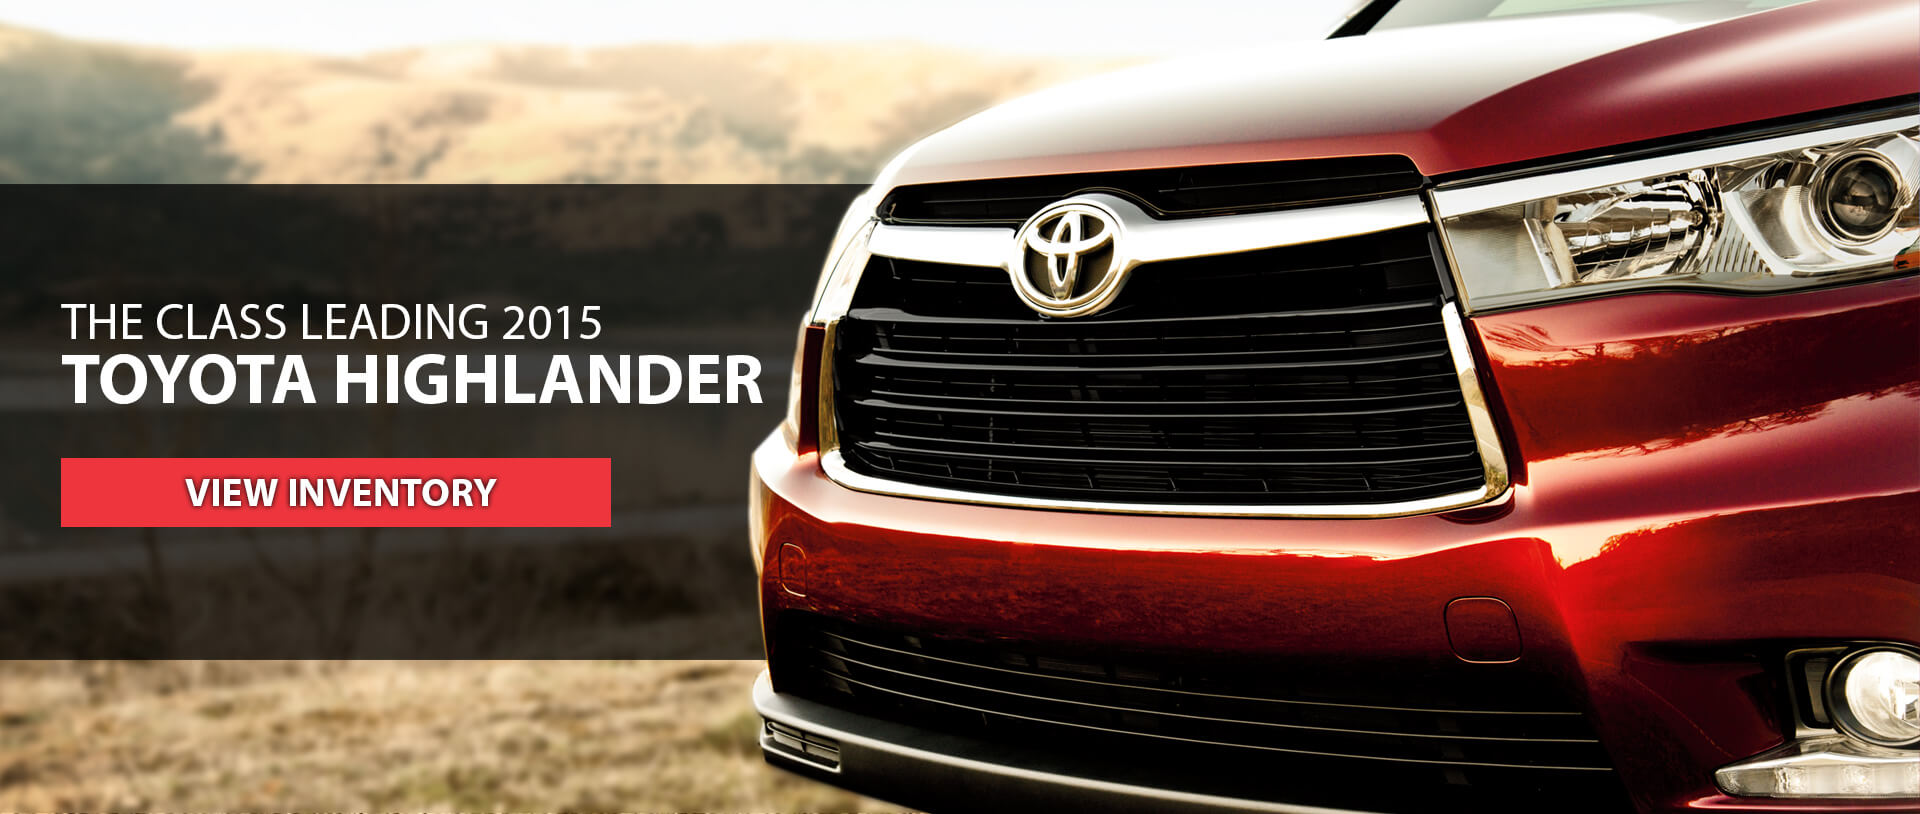 The Class Leading 2015 Toyota Highlander